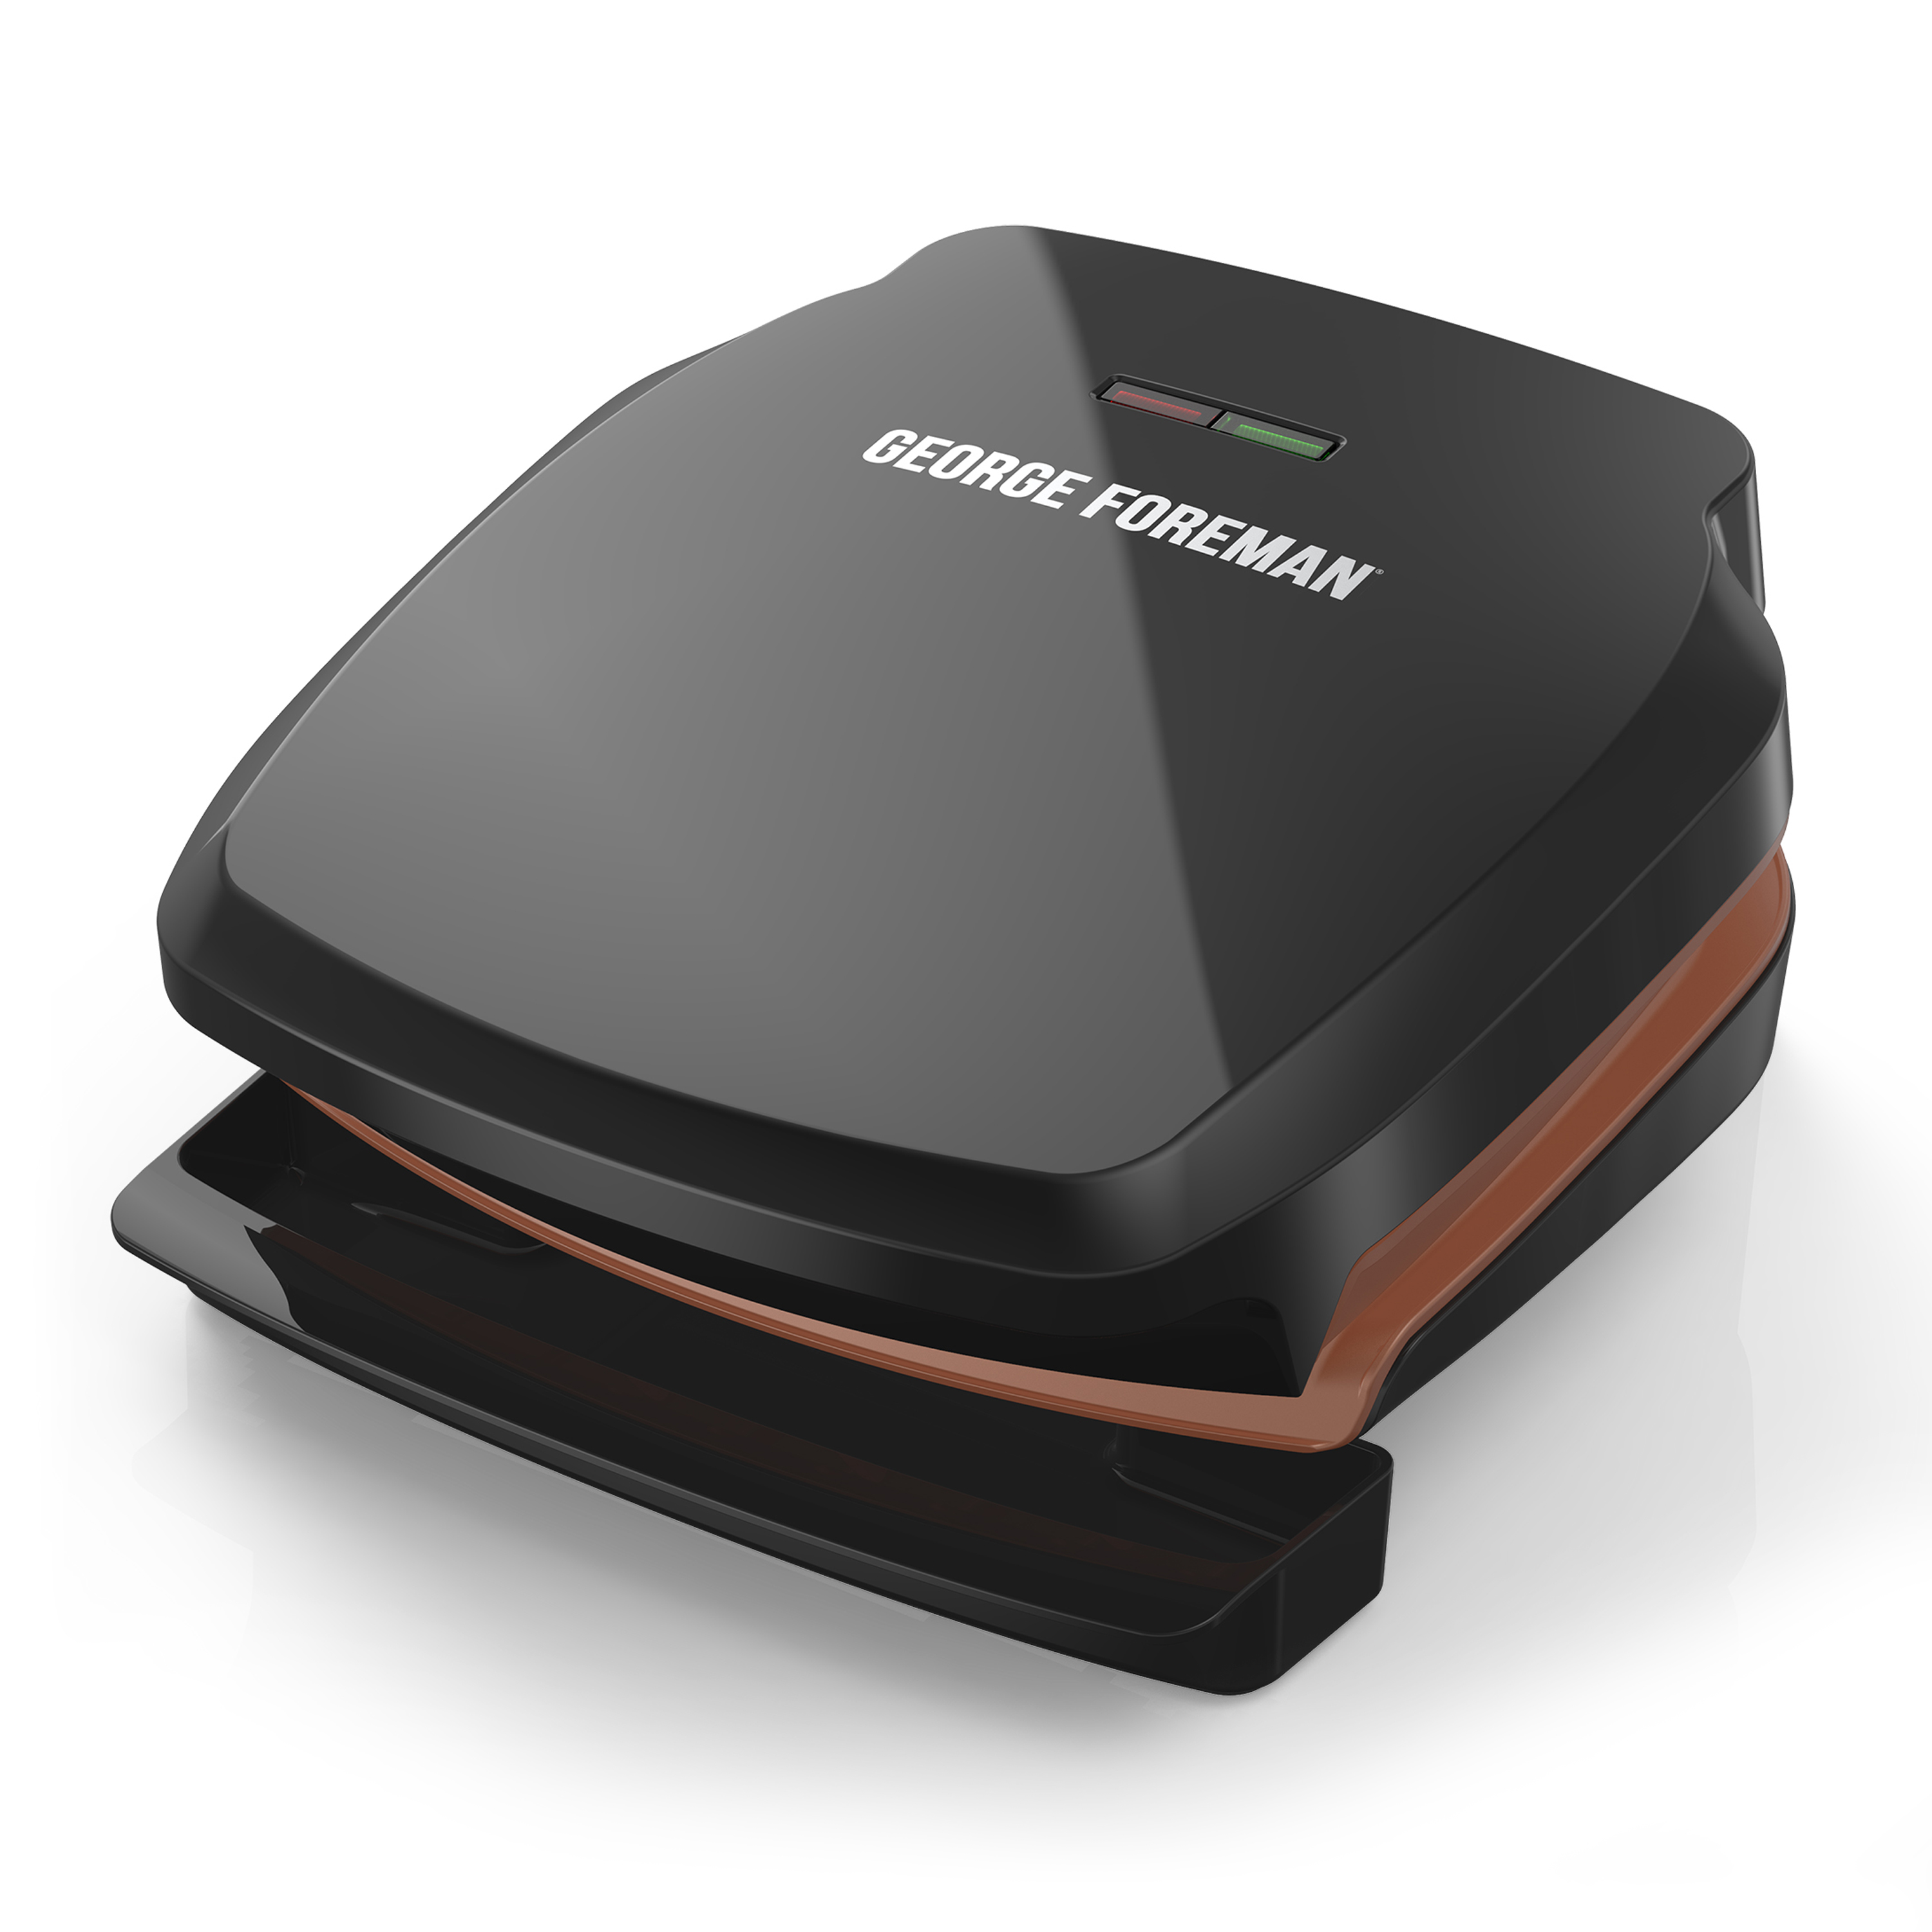 George Foreman 2-Serving Copper Color Classic Plate Grill, Electric Indoor Grill and Panini Press, Black/Copper, GR320FBC